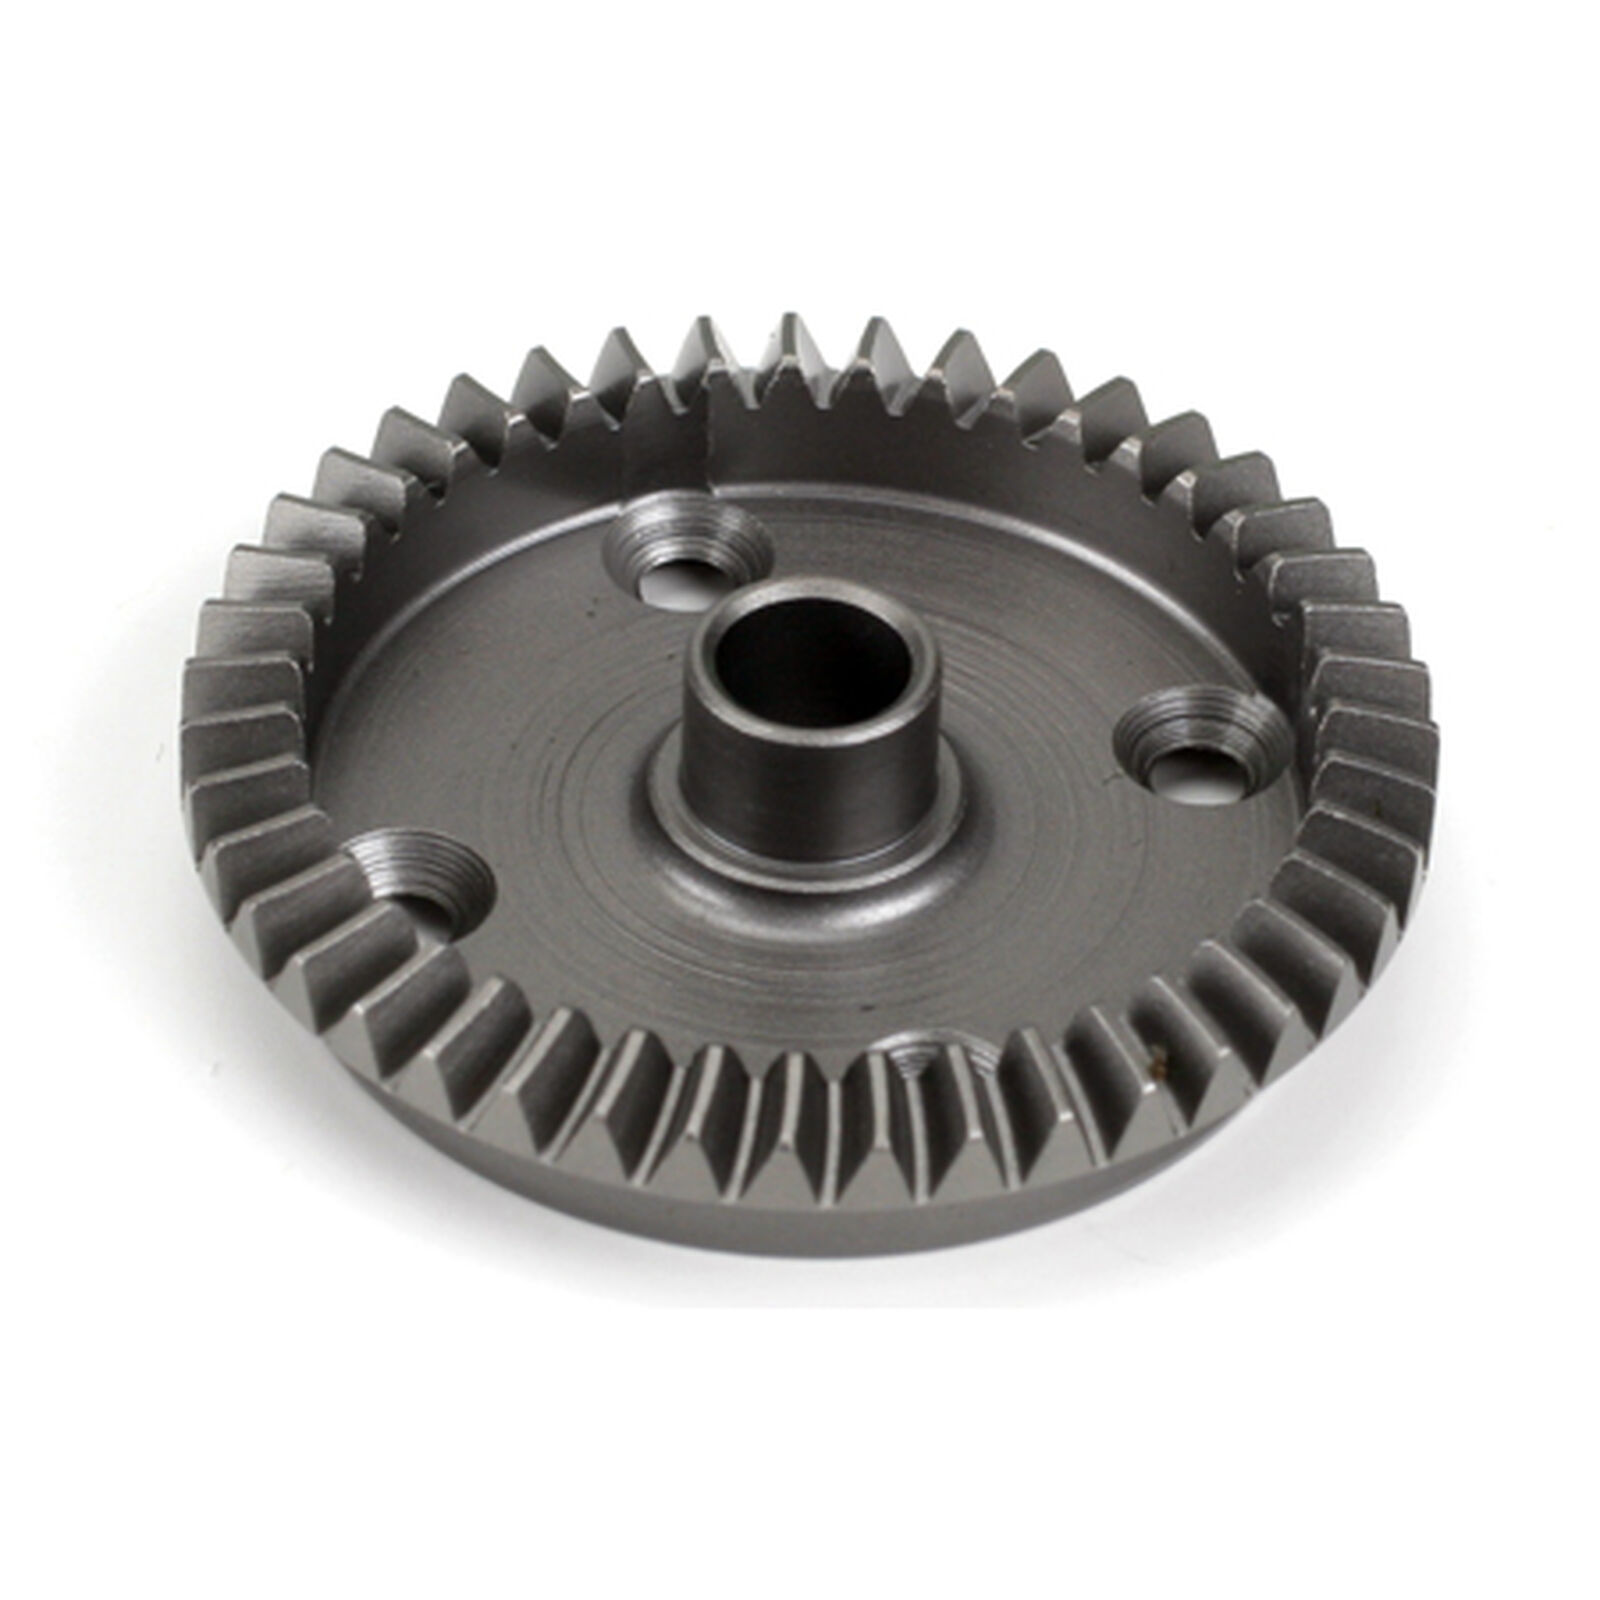 Rear Differential Ring Gear: 8B, 8X, 8XE